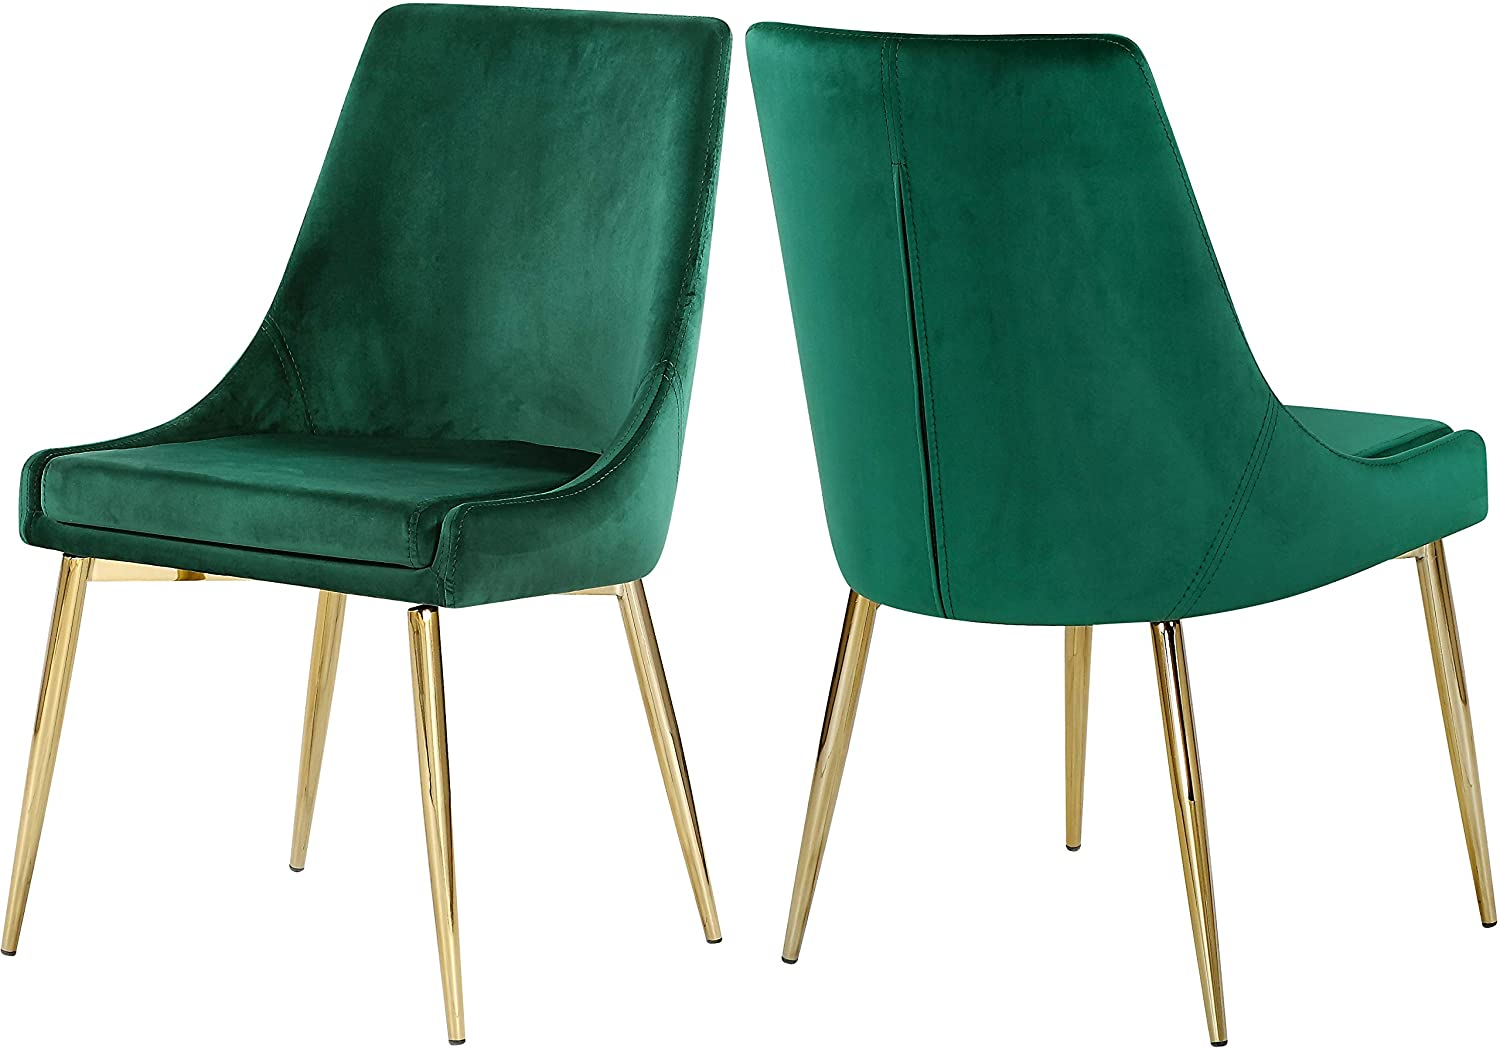 "Meridian Furniture Karina Collection Green Modern | Contemporary Velvet Upholstered Dining Chair with Polished Gold Metal Legs, Set of 2, 19.5"" W x 21.5"" D x 33.5"" H,"